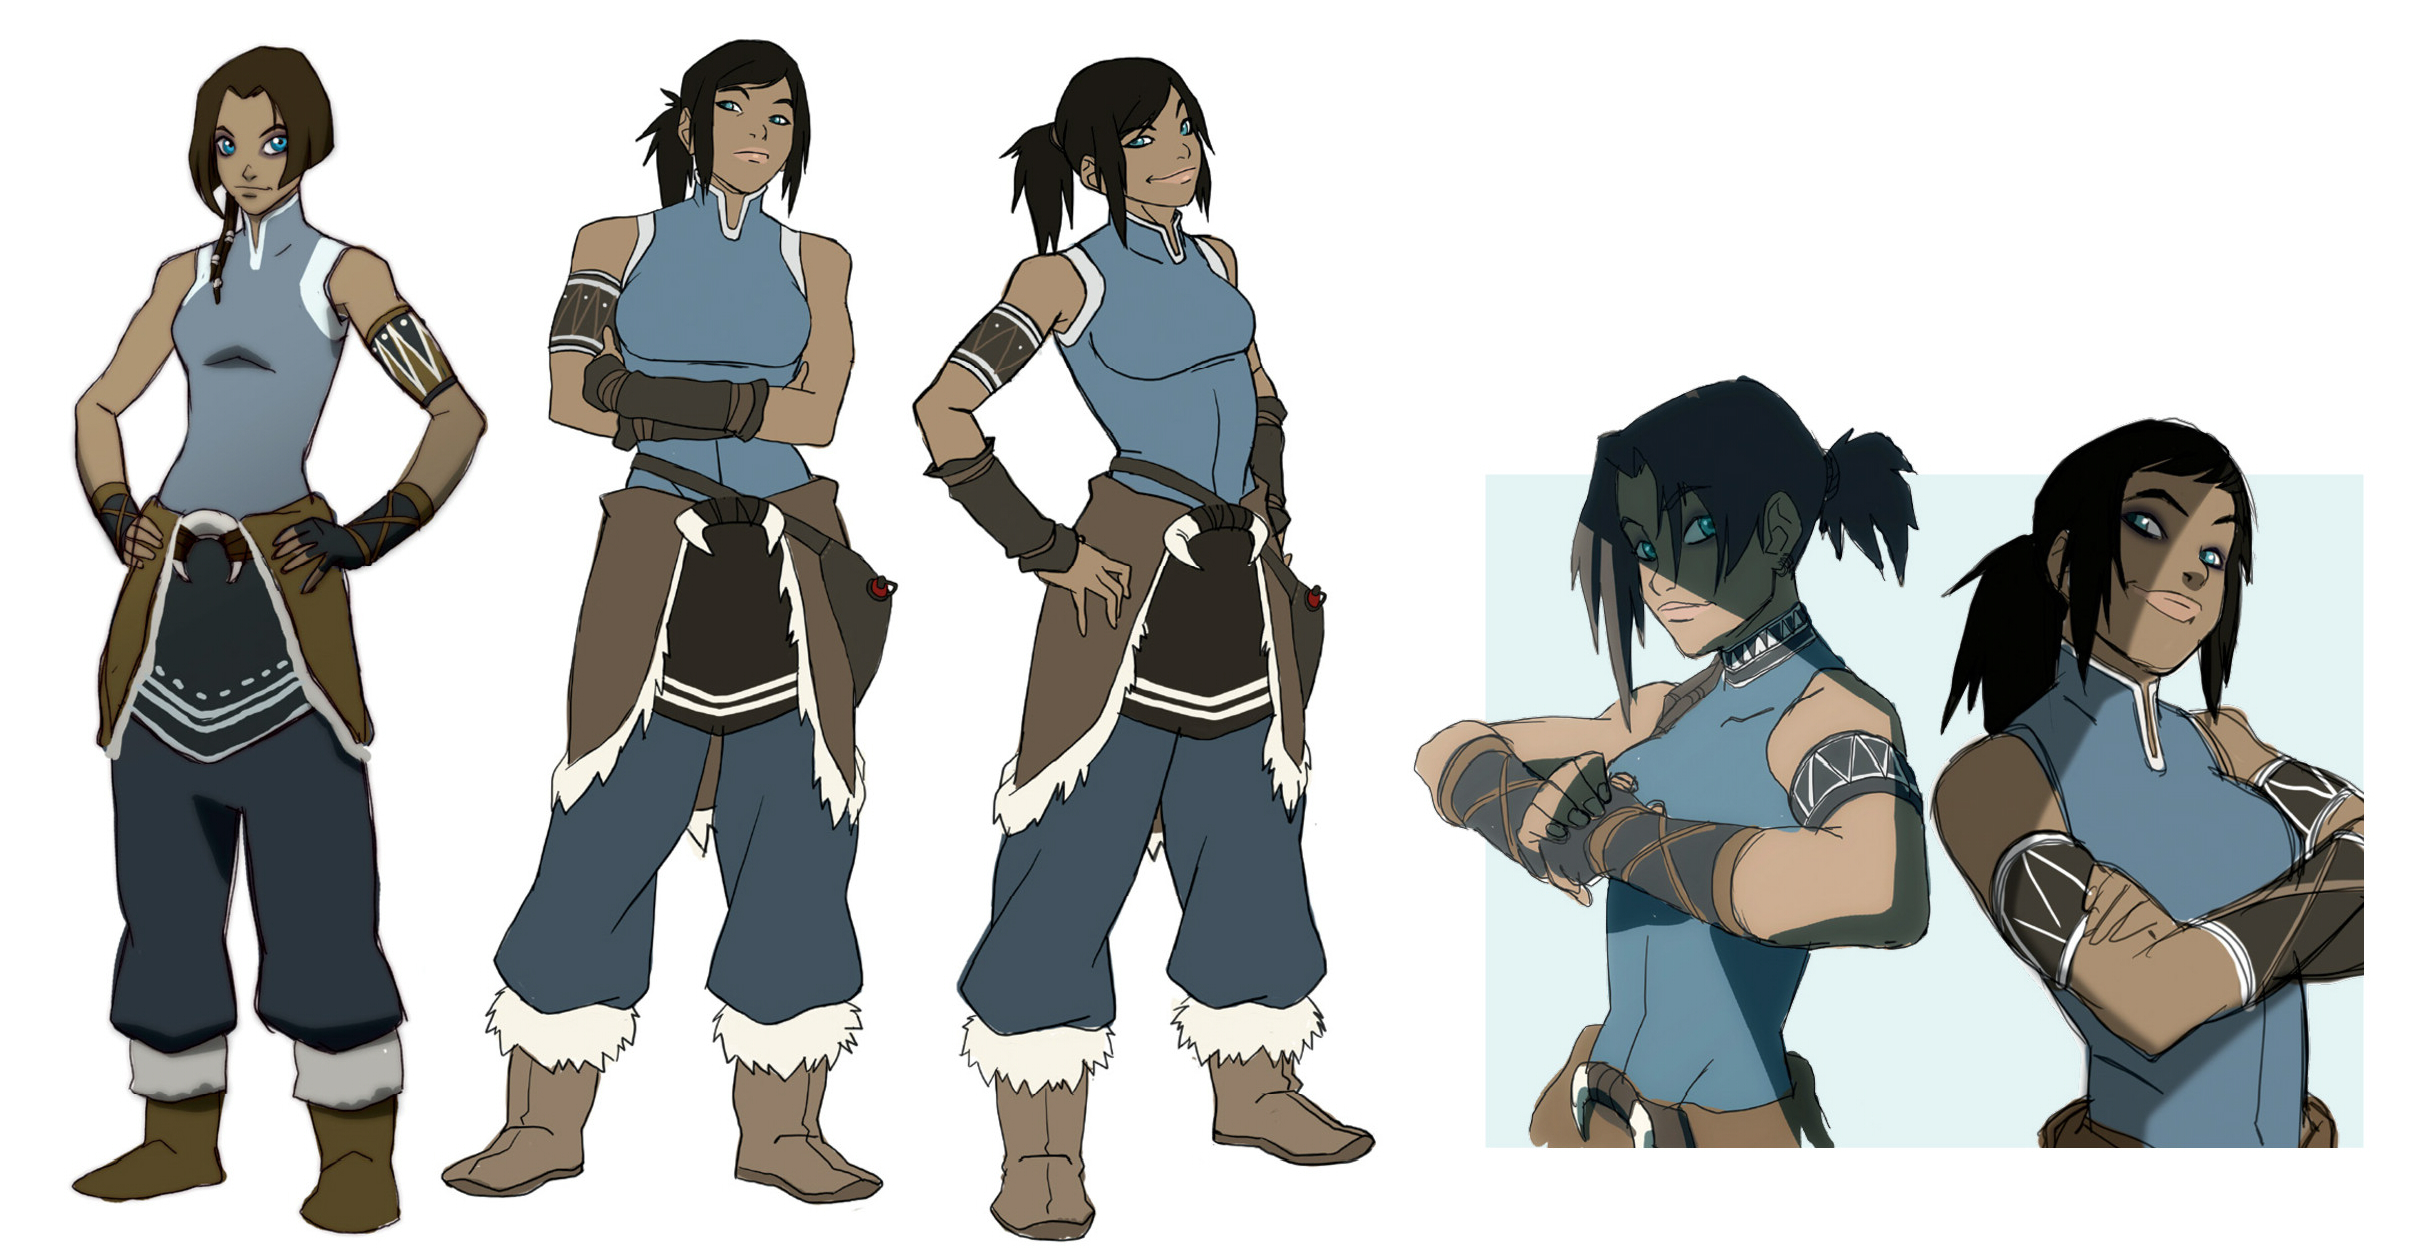 avatar character sheet korra - avatar: the legend of korra - image #